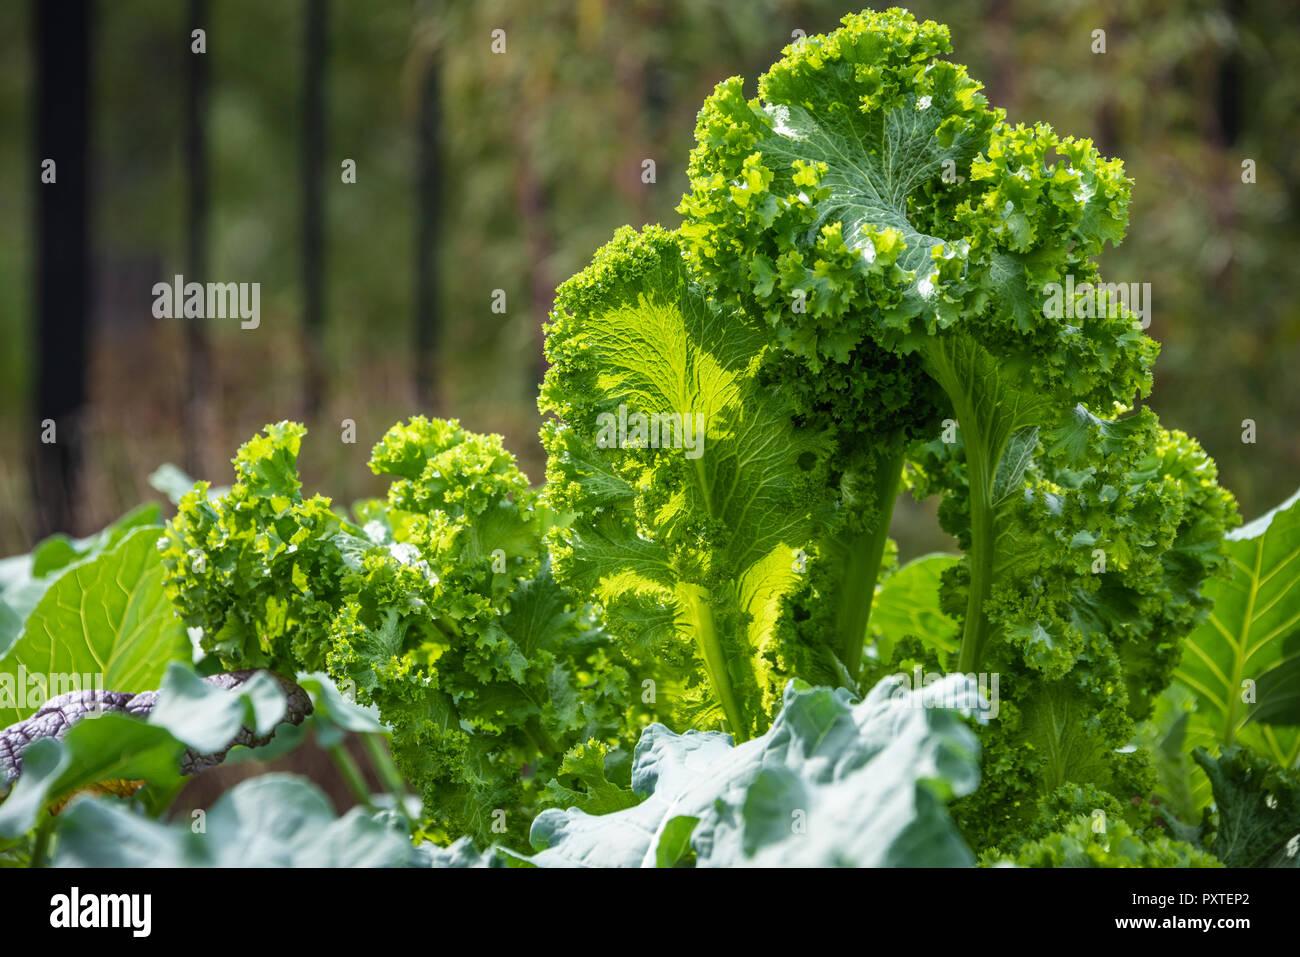 Kale, a nutrient dense superfood, growing in a community garden in Metro Atlanta, Georgia. - Stock Image